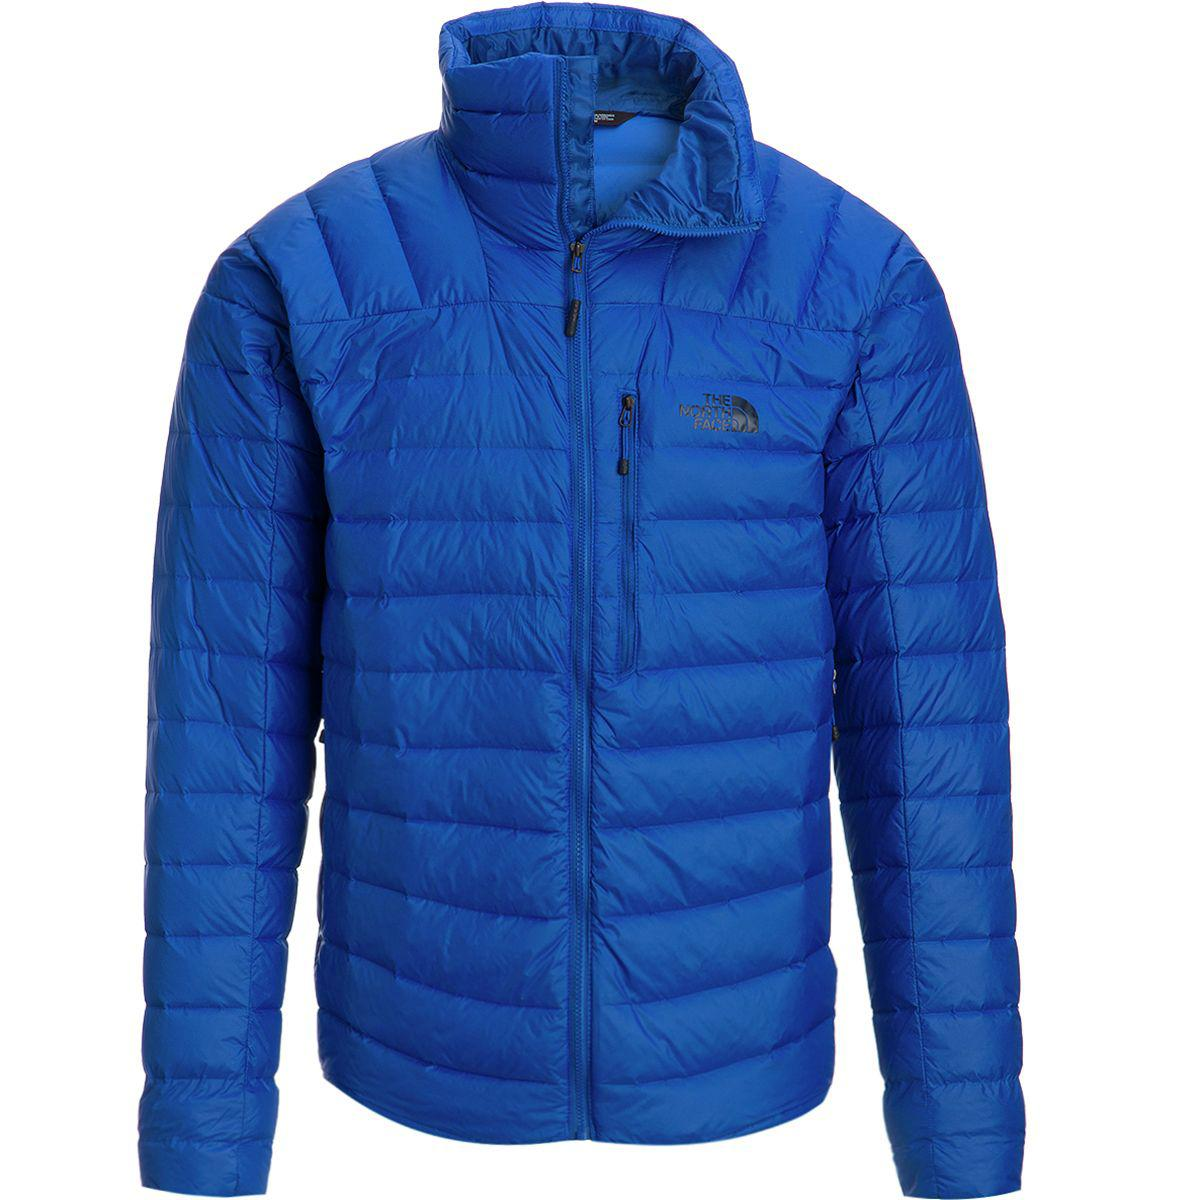 Lyst - The North Face Morph Down Jacket in Blue for Men 46f764e3b